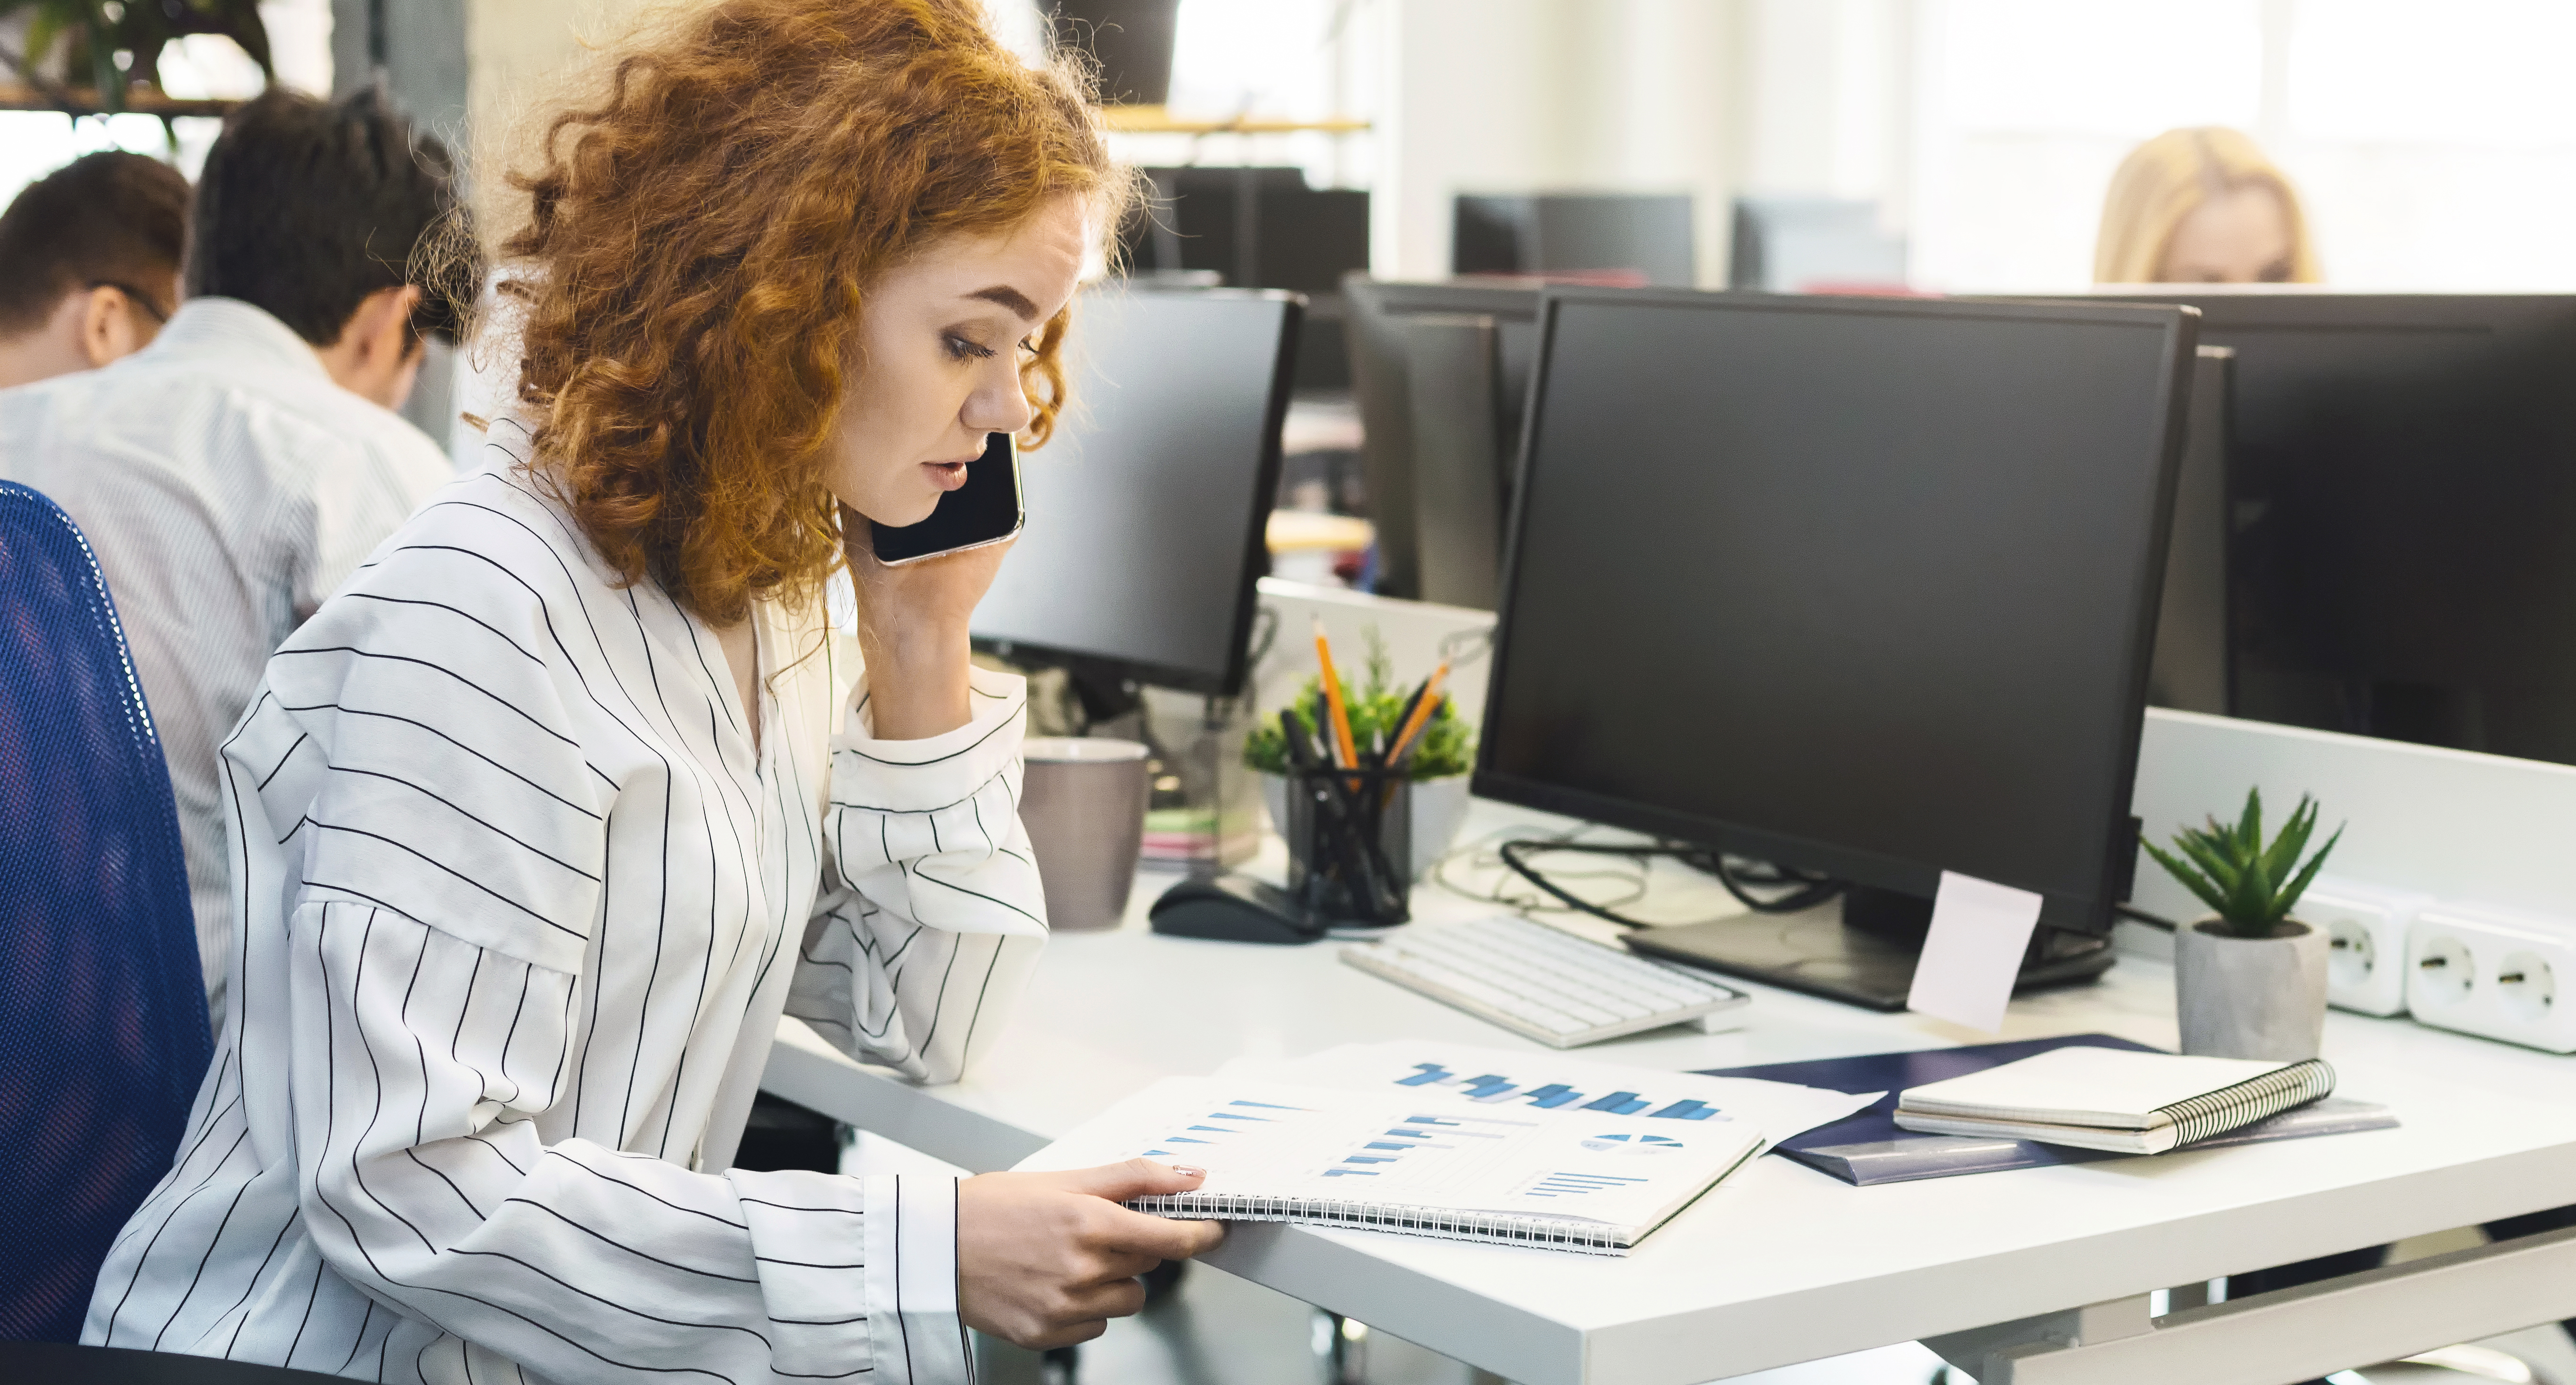 Woman looking at presentation while on the phone at a desk